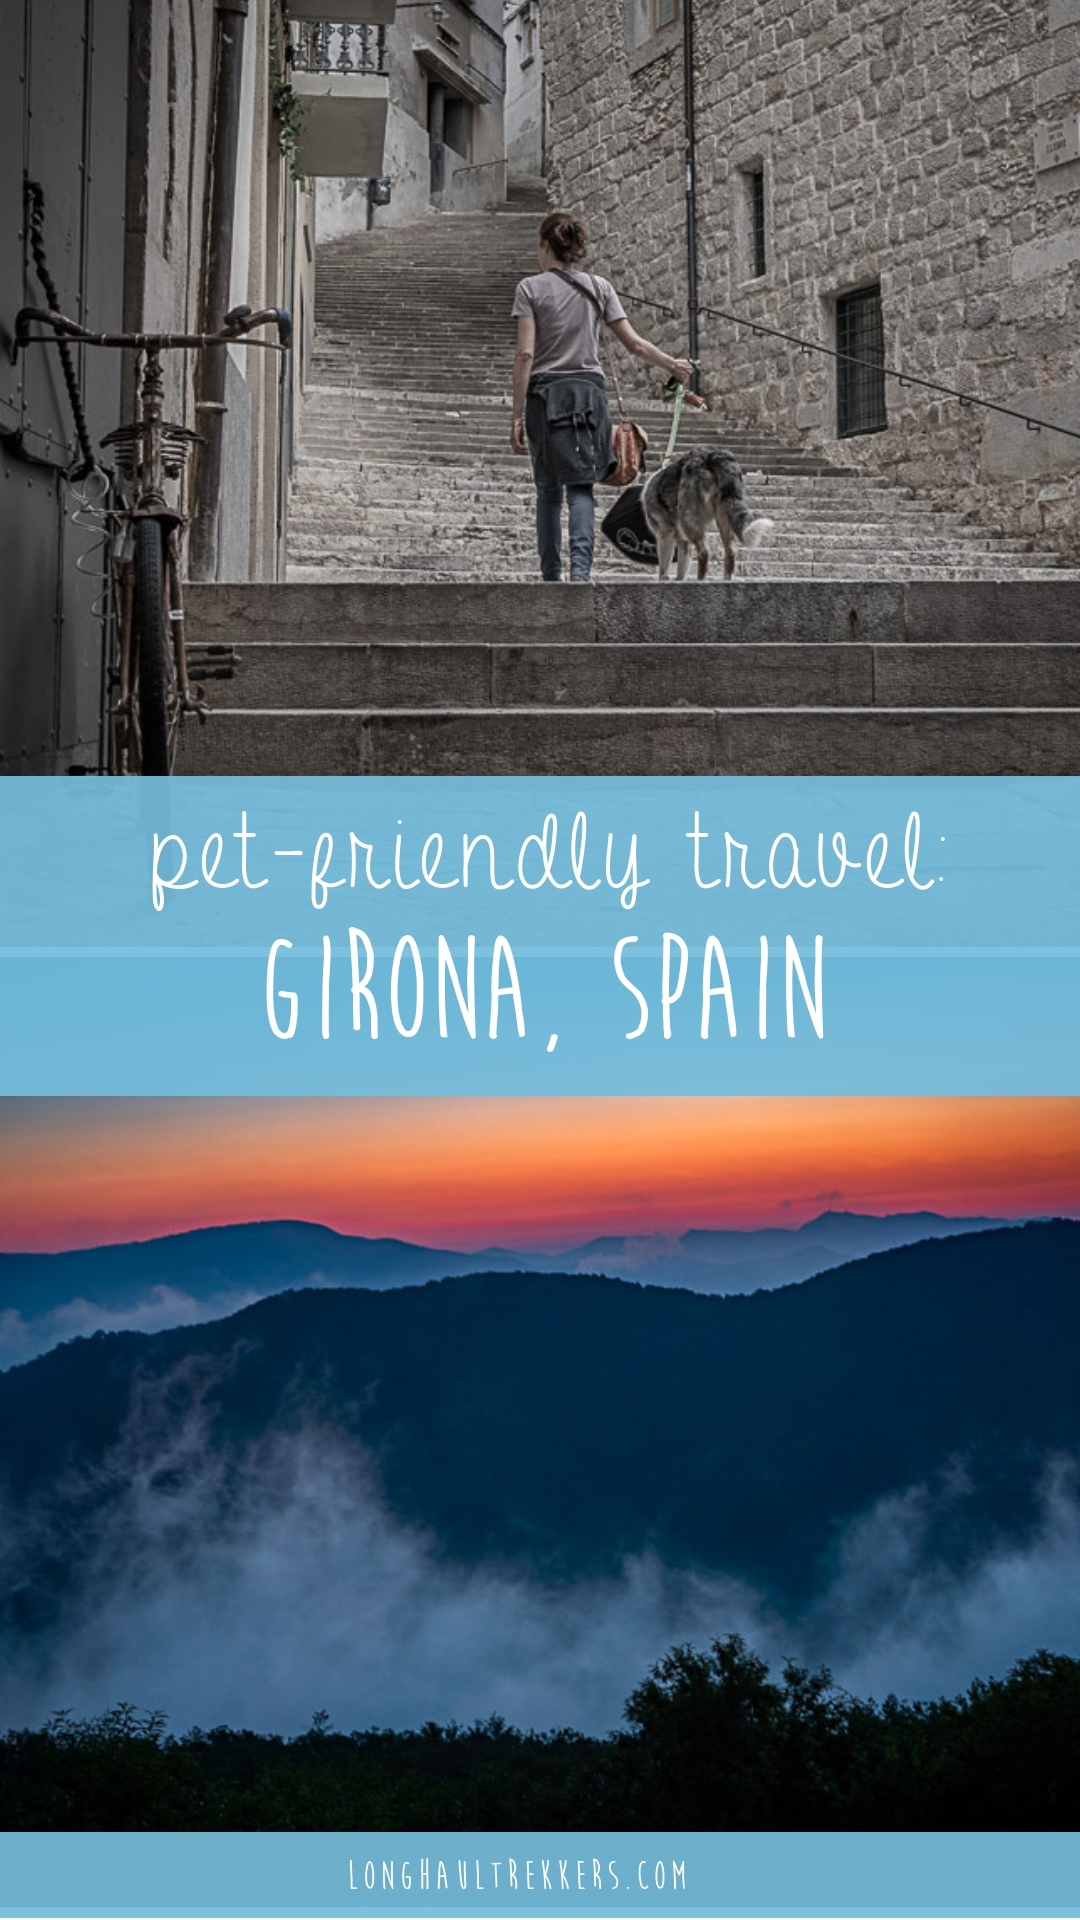 With its temperate weather, loads of cafes, and plenty of outdoor activities, visiting Girona with a dog is easy. We share some of our favorite spots to hit.